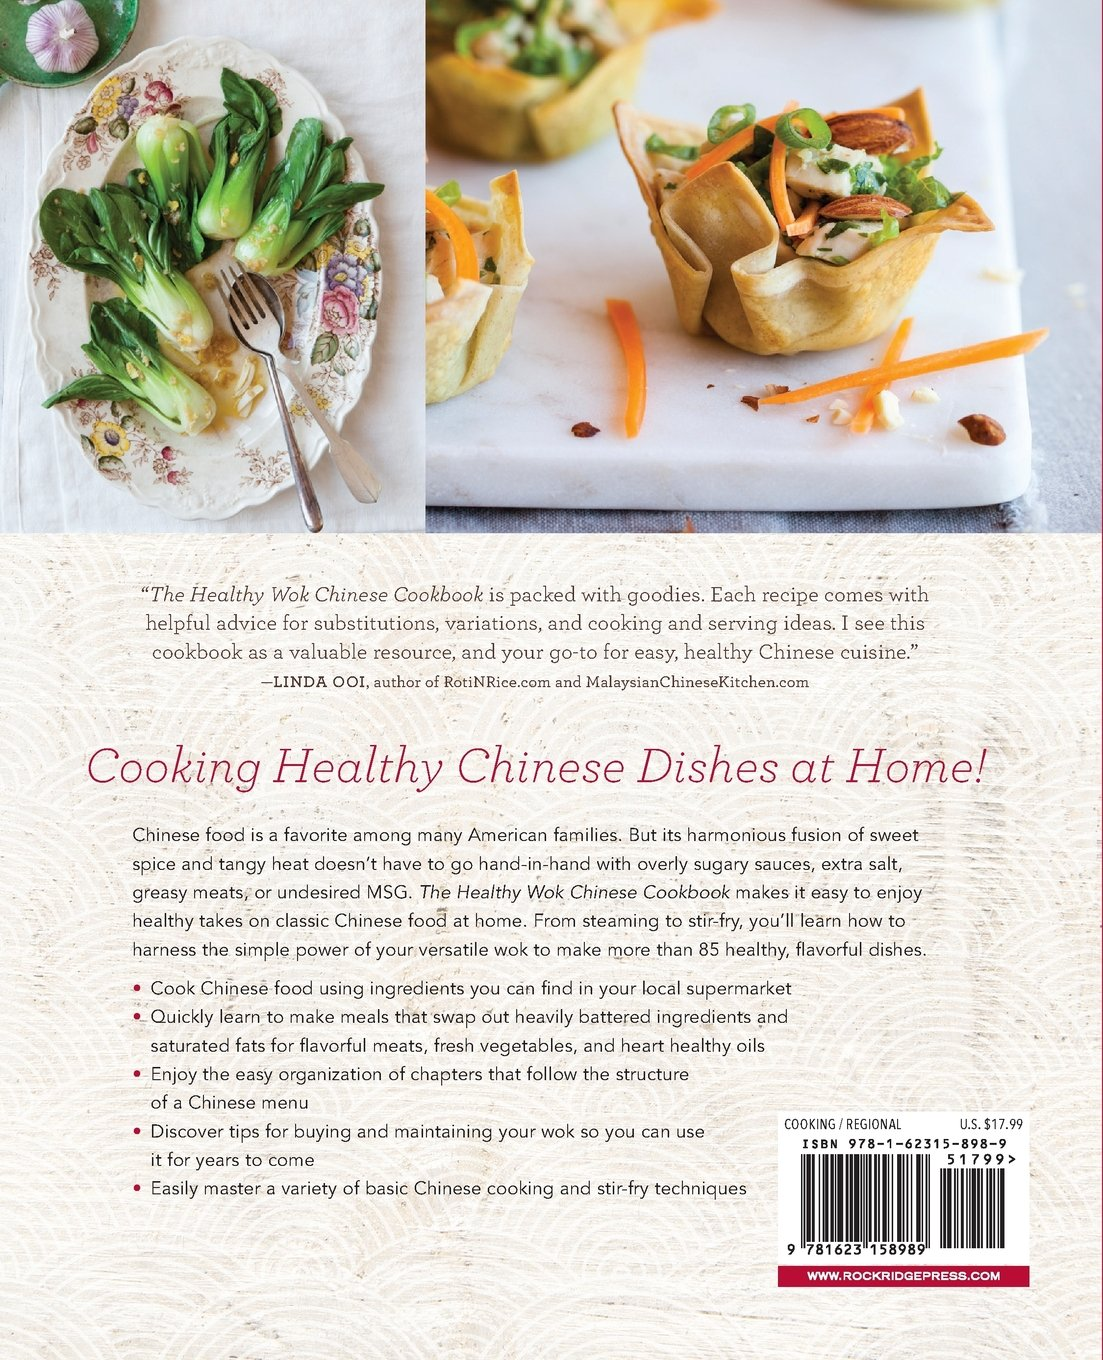 The healthy wok chinese cookbook fresh recipes to sizzle steam the healthy wok chinese cookbook fresh recipes to sizzle steam and stir fry restaurant favorites at home charmaine ferrara 9781623158989 amazon forumfinder Images